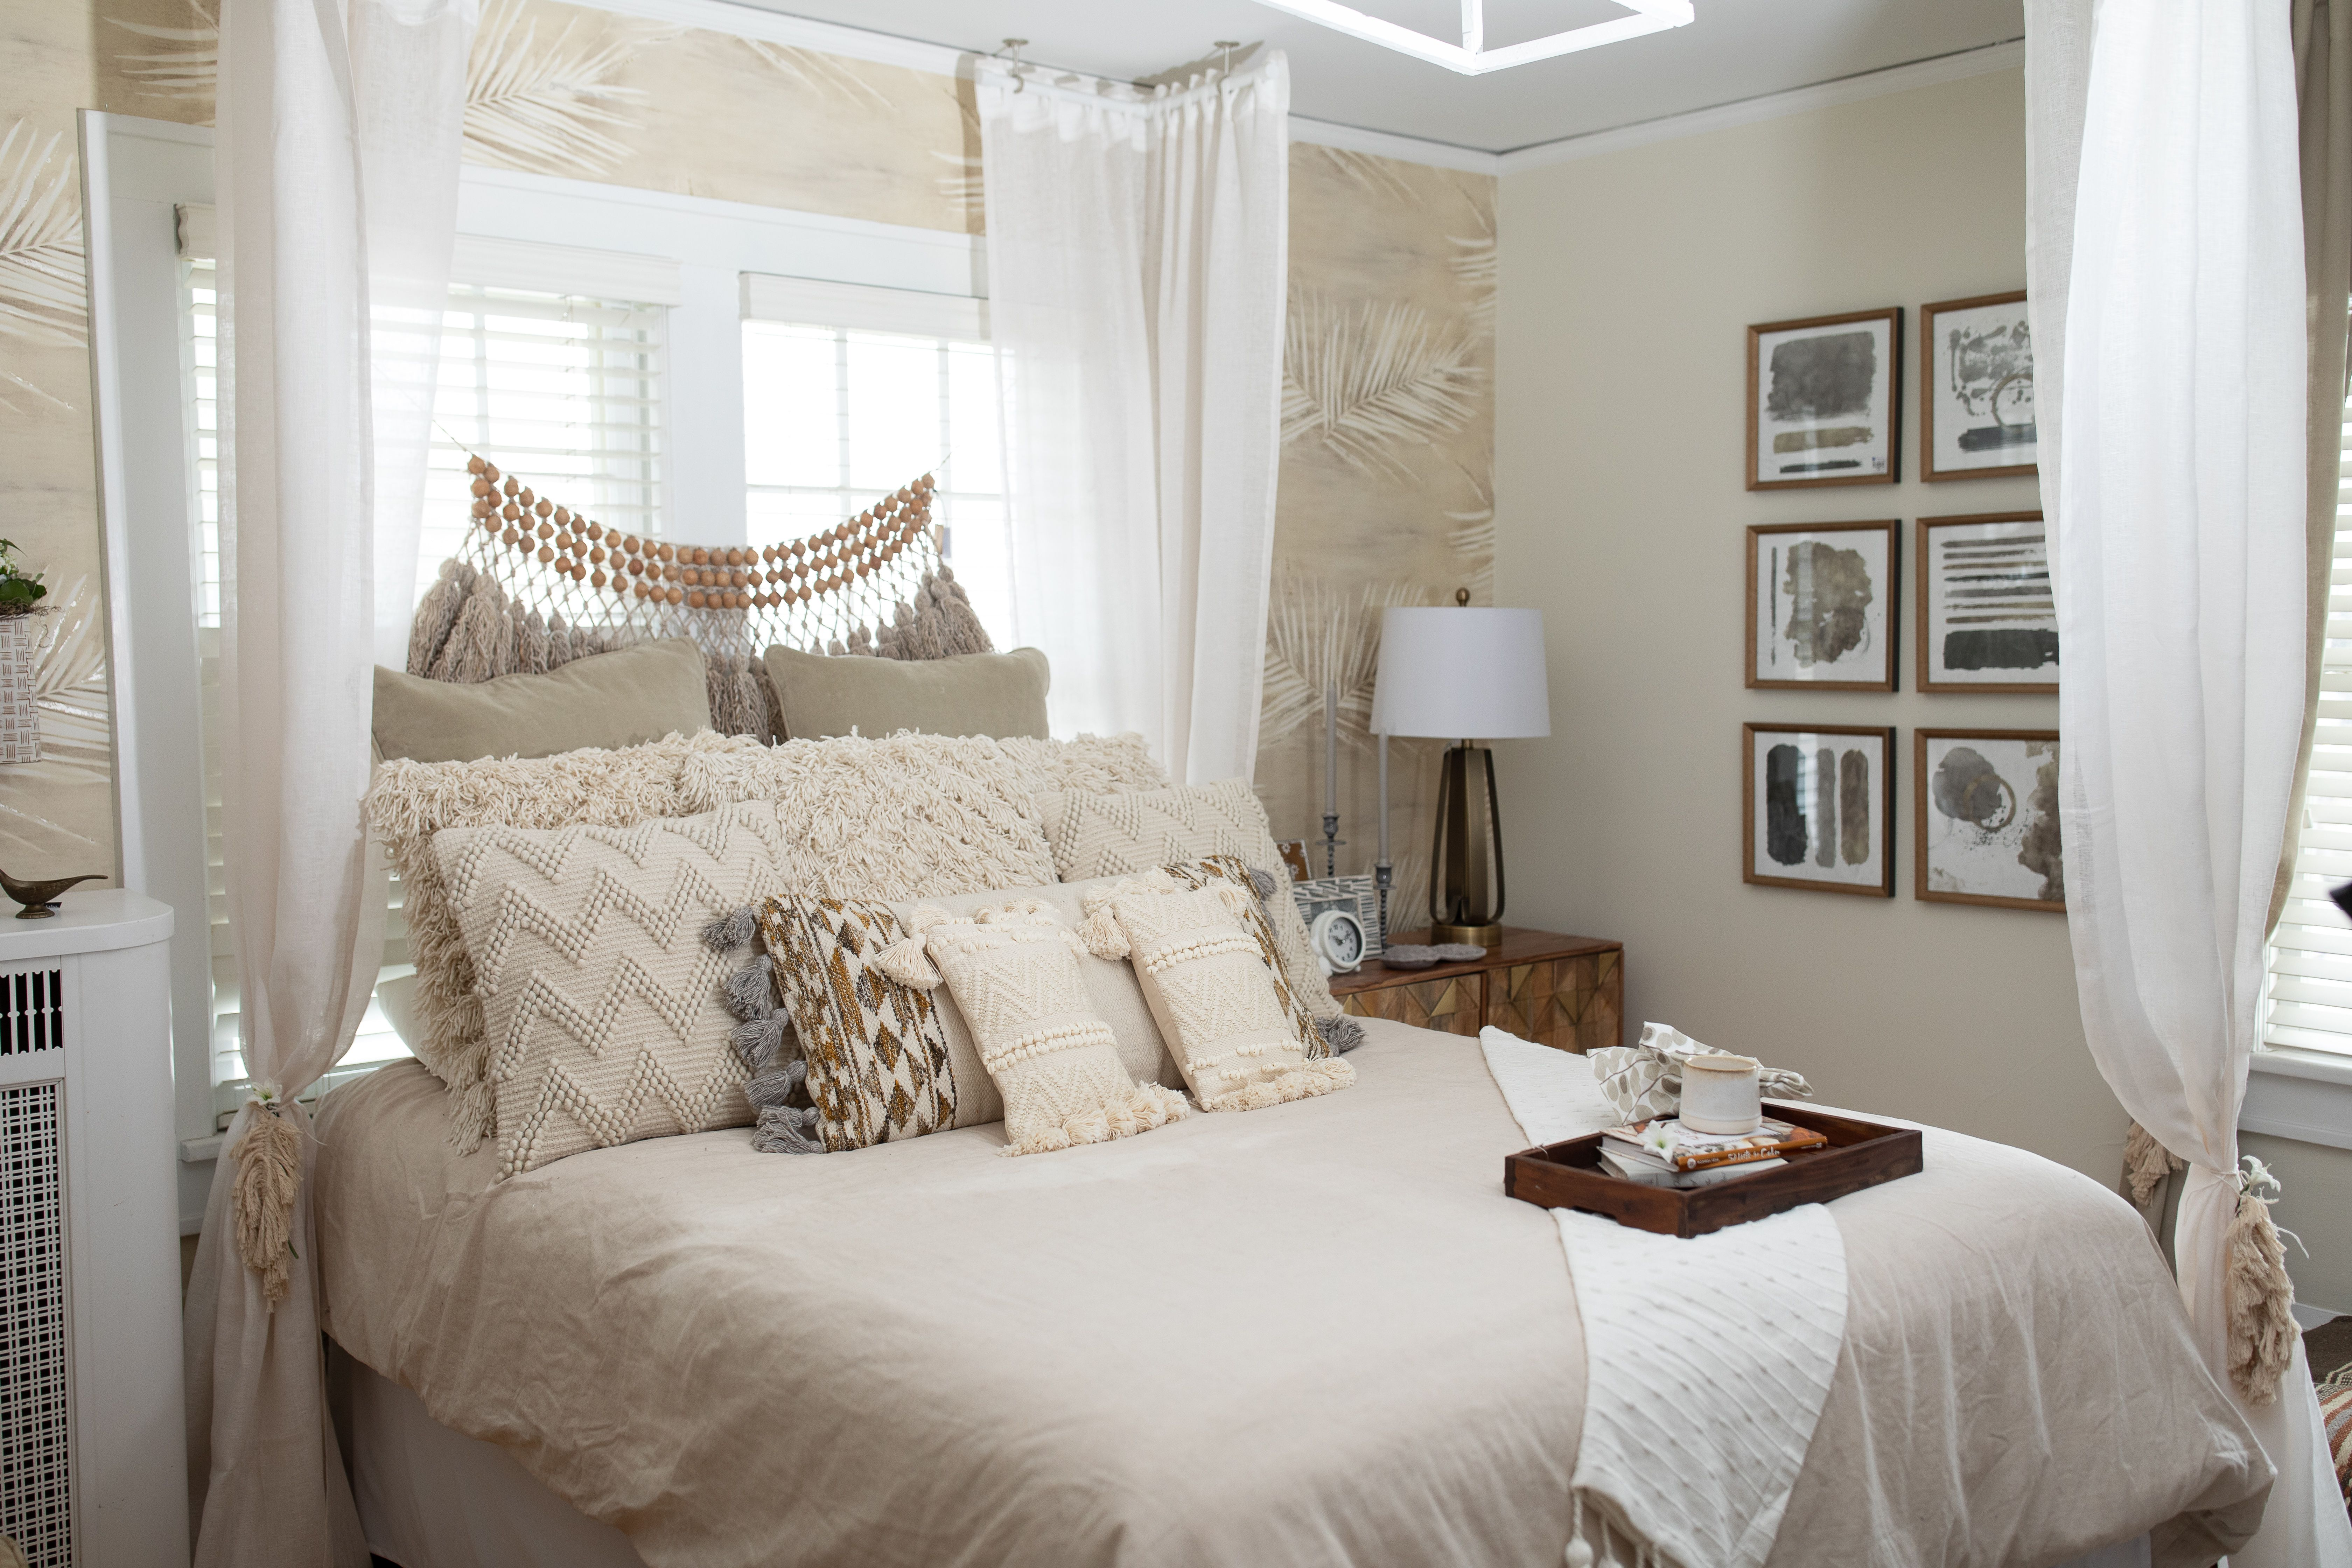 Master Bedroom in 2020 House, Home decor, Master bedroom